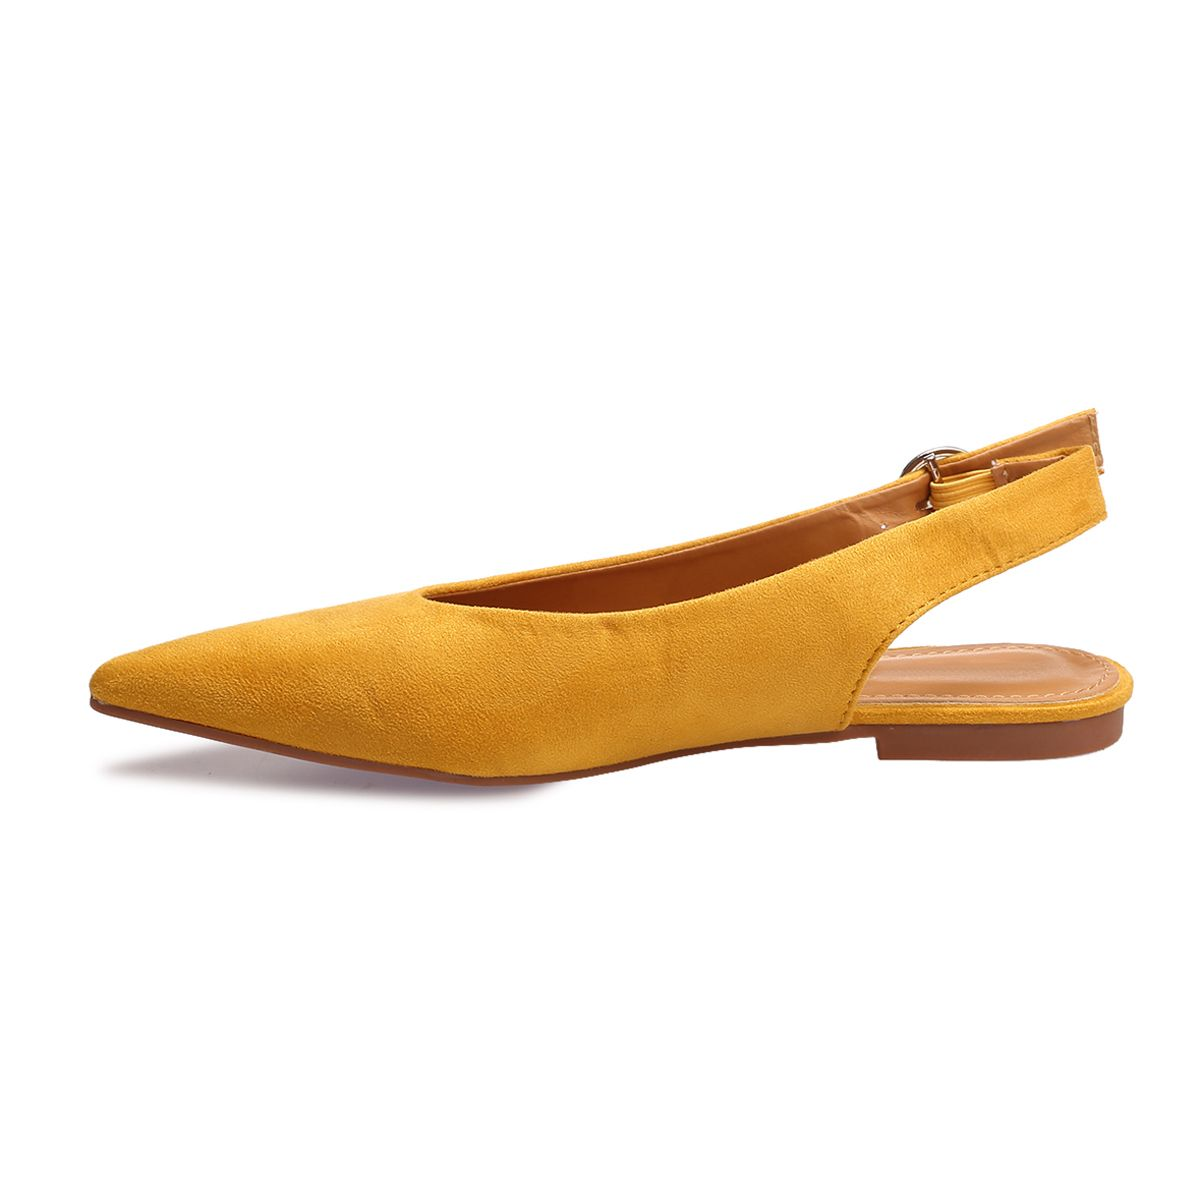 Ballerines jaune moutarde pointues à boucle